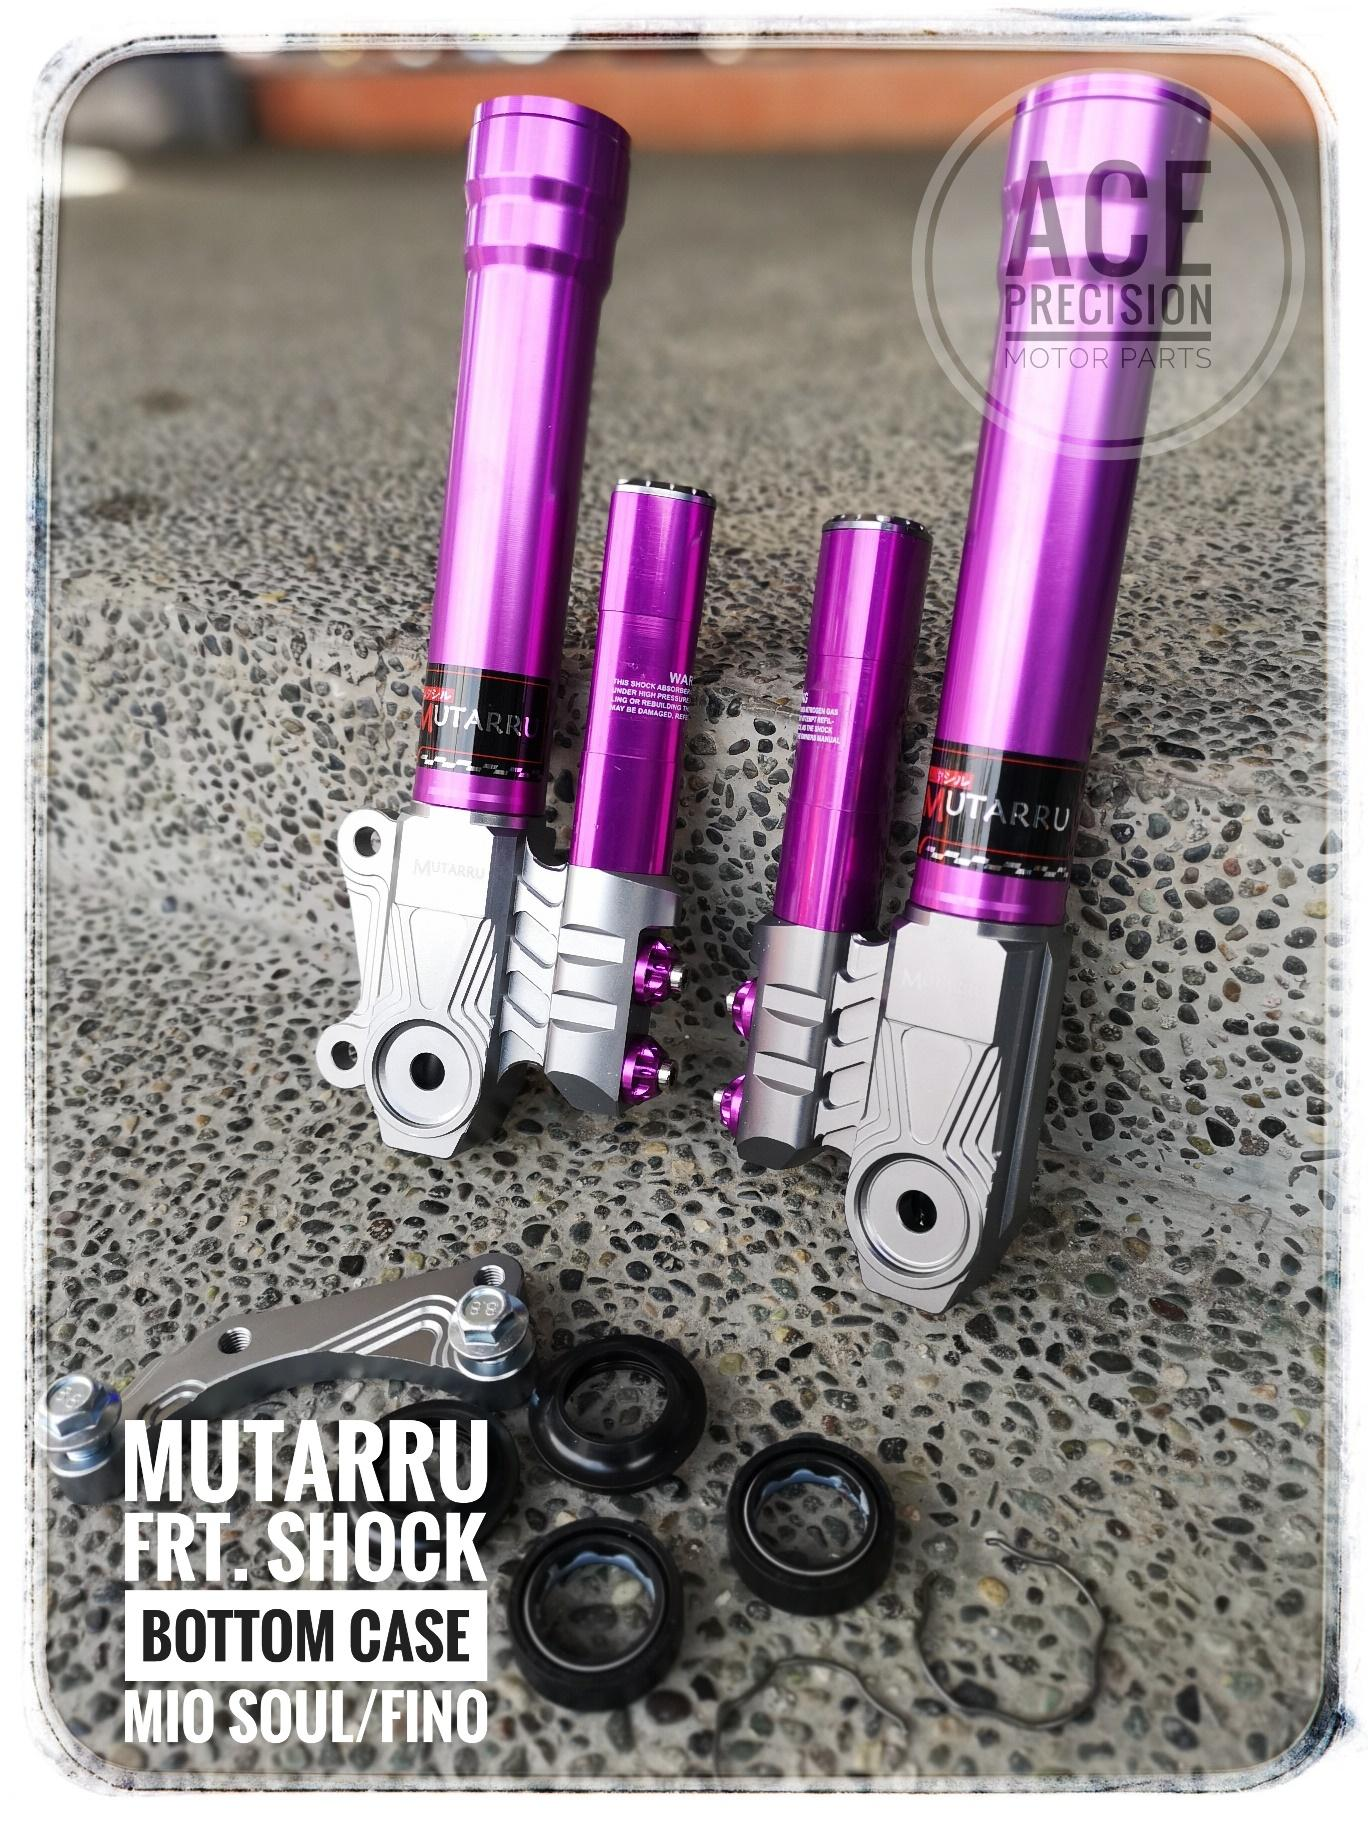 Mutarru Front Shock Bottom Case For Mio Sporty/amore/soul W/ Oil Seal, Fork Clip, Bracket For Stock Caliper, Caliper Bolt - Purple By Ace Precision Motor Parts.